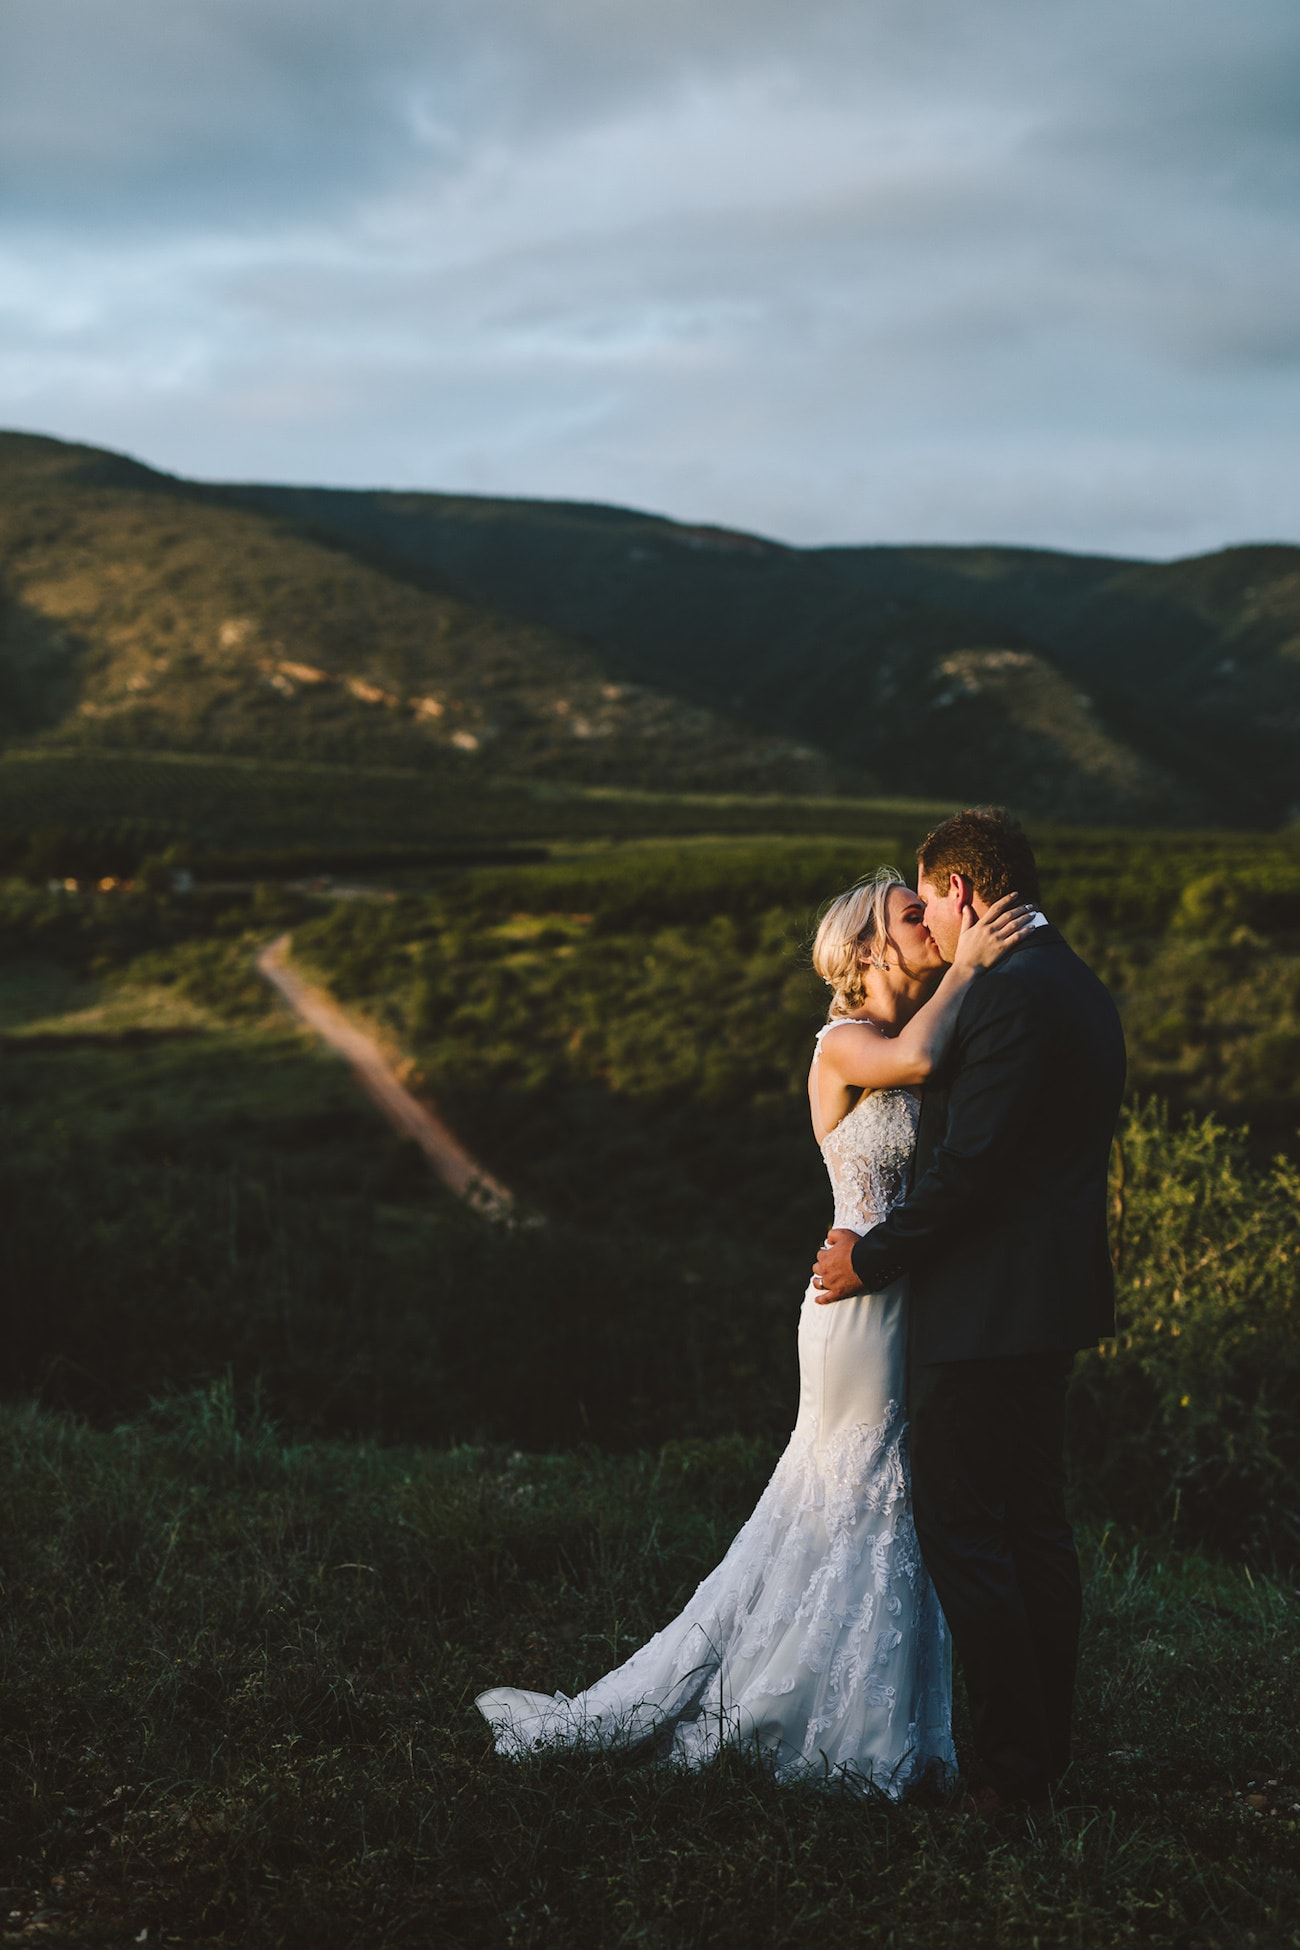 Lace Wedding Dress | Credit: Charlie Ray Photography